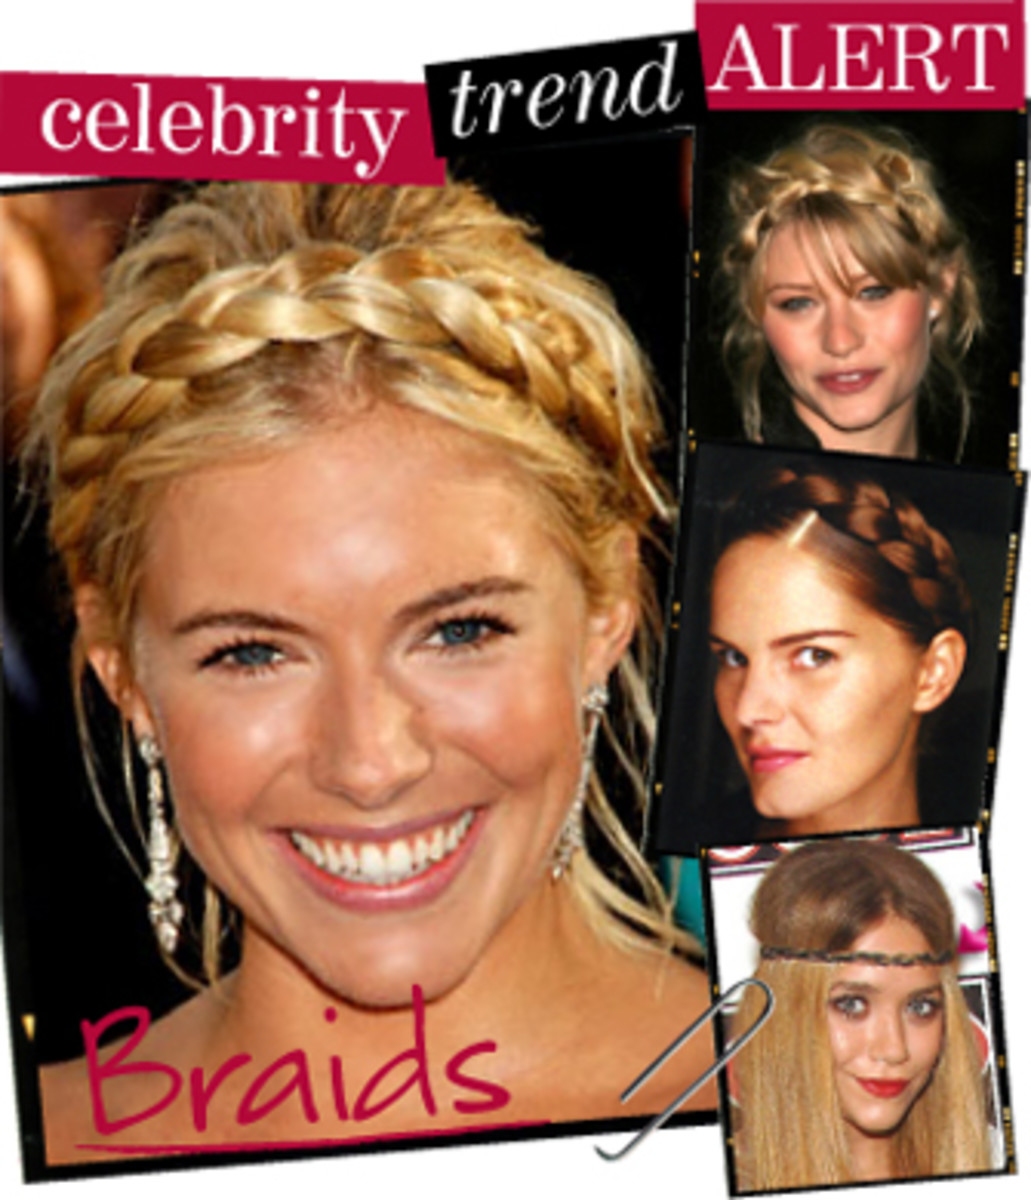 A Collection of Hair Braids / Popular and Different Kinds of Braiding Styles and Looks